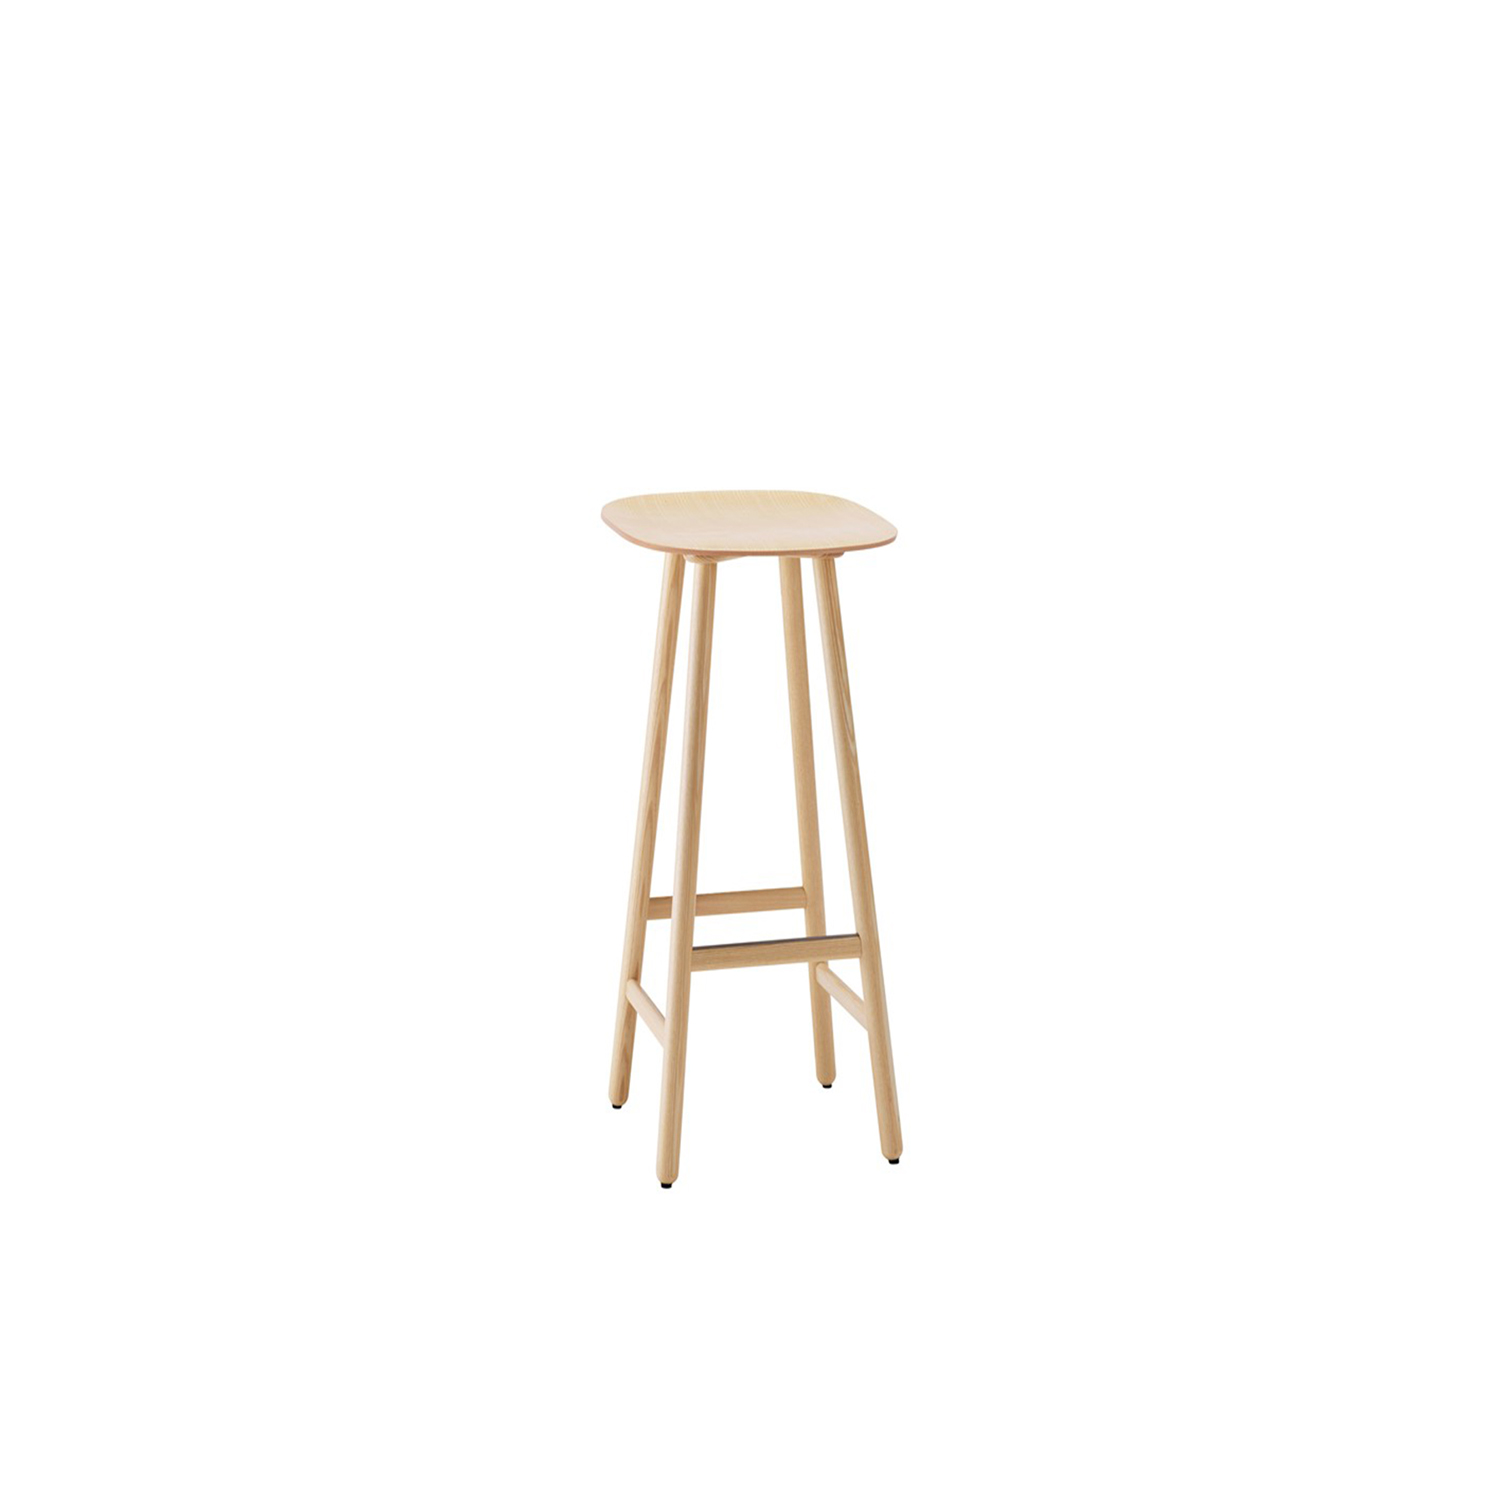 Shell High Barstool - Shell stool (2015) has the clean lines and innovative combination of materials that are the signature features of Scandinavian design. Like a chair, Shell has a back and front, with a hint of an upward slope at the rear and a gently rounded front edge for enhanced comfort while seated. Available in solid oak, birch, ash, standard colors, standard stains on ash and white glazed oak or ash. Shell comes in a choice of three heights 450, 650 and 800 mm.  Choose a wooden seat or one upholstered in fabric or leather. The footrest of high stool has a stainless steel footrest protector.  The stool is available with cushion with a leather or fabric cover at an extra cost. Please enquire for more details. | Matter of Stuff